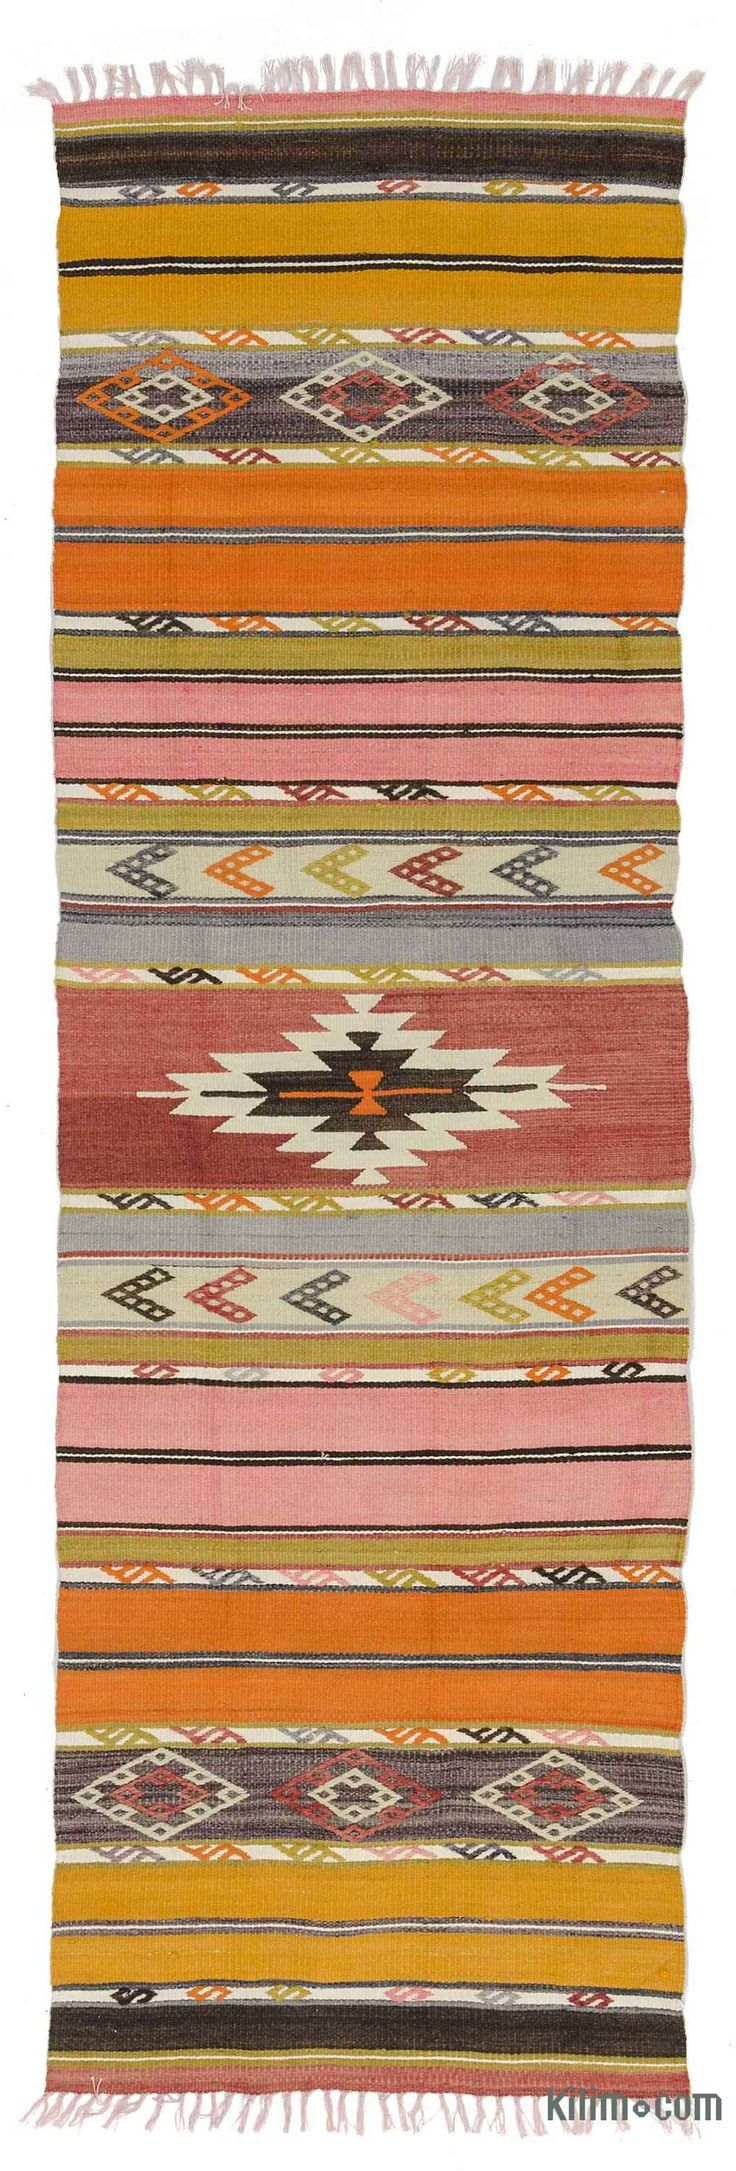 Vintage kilim runner rug hand-woven in the Aegean Region of Turkey in 1970's. This lovely tribal kilim is in very good condition. Rug pad recommended.